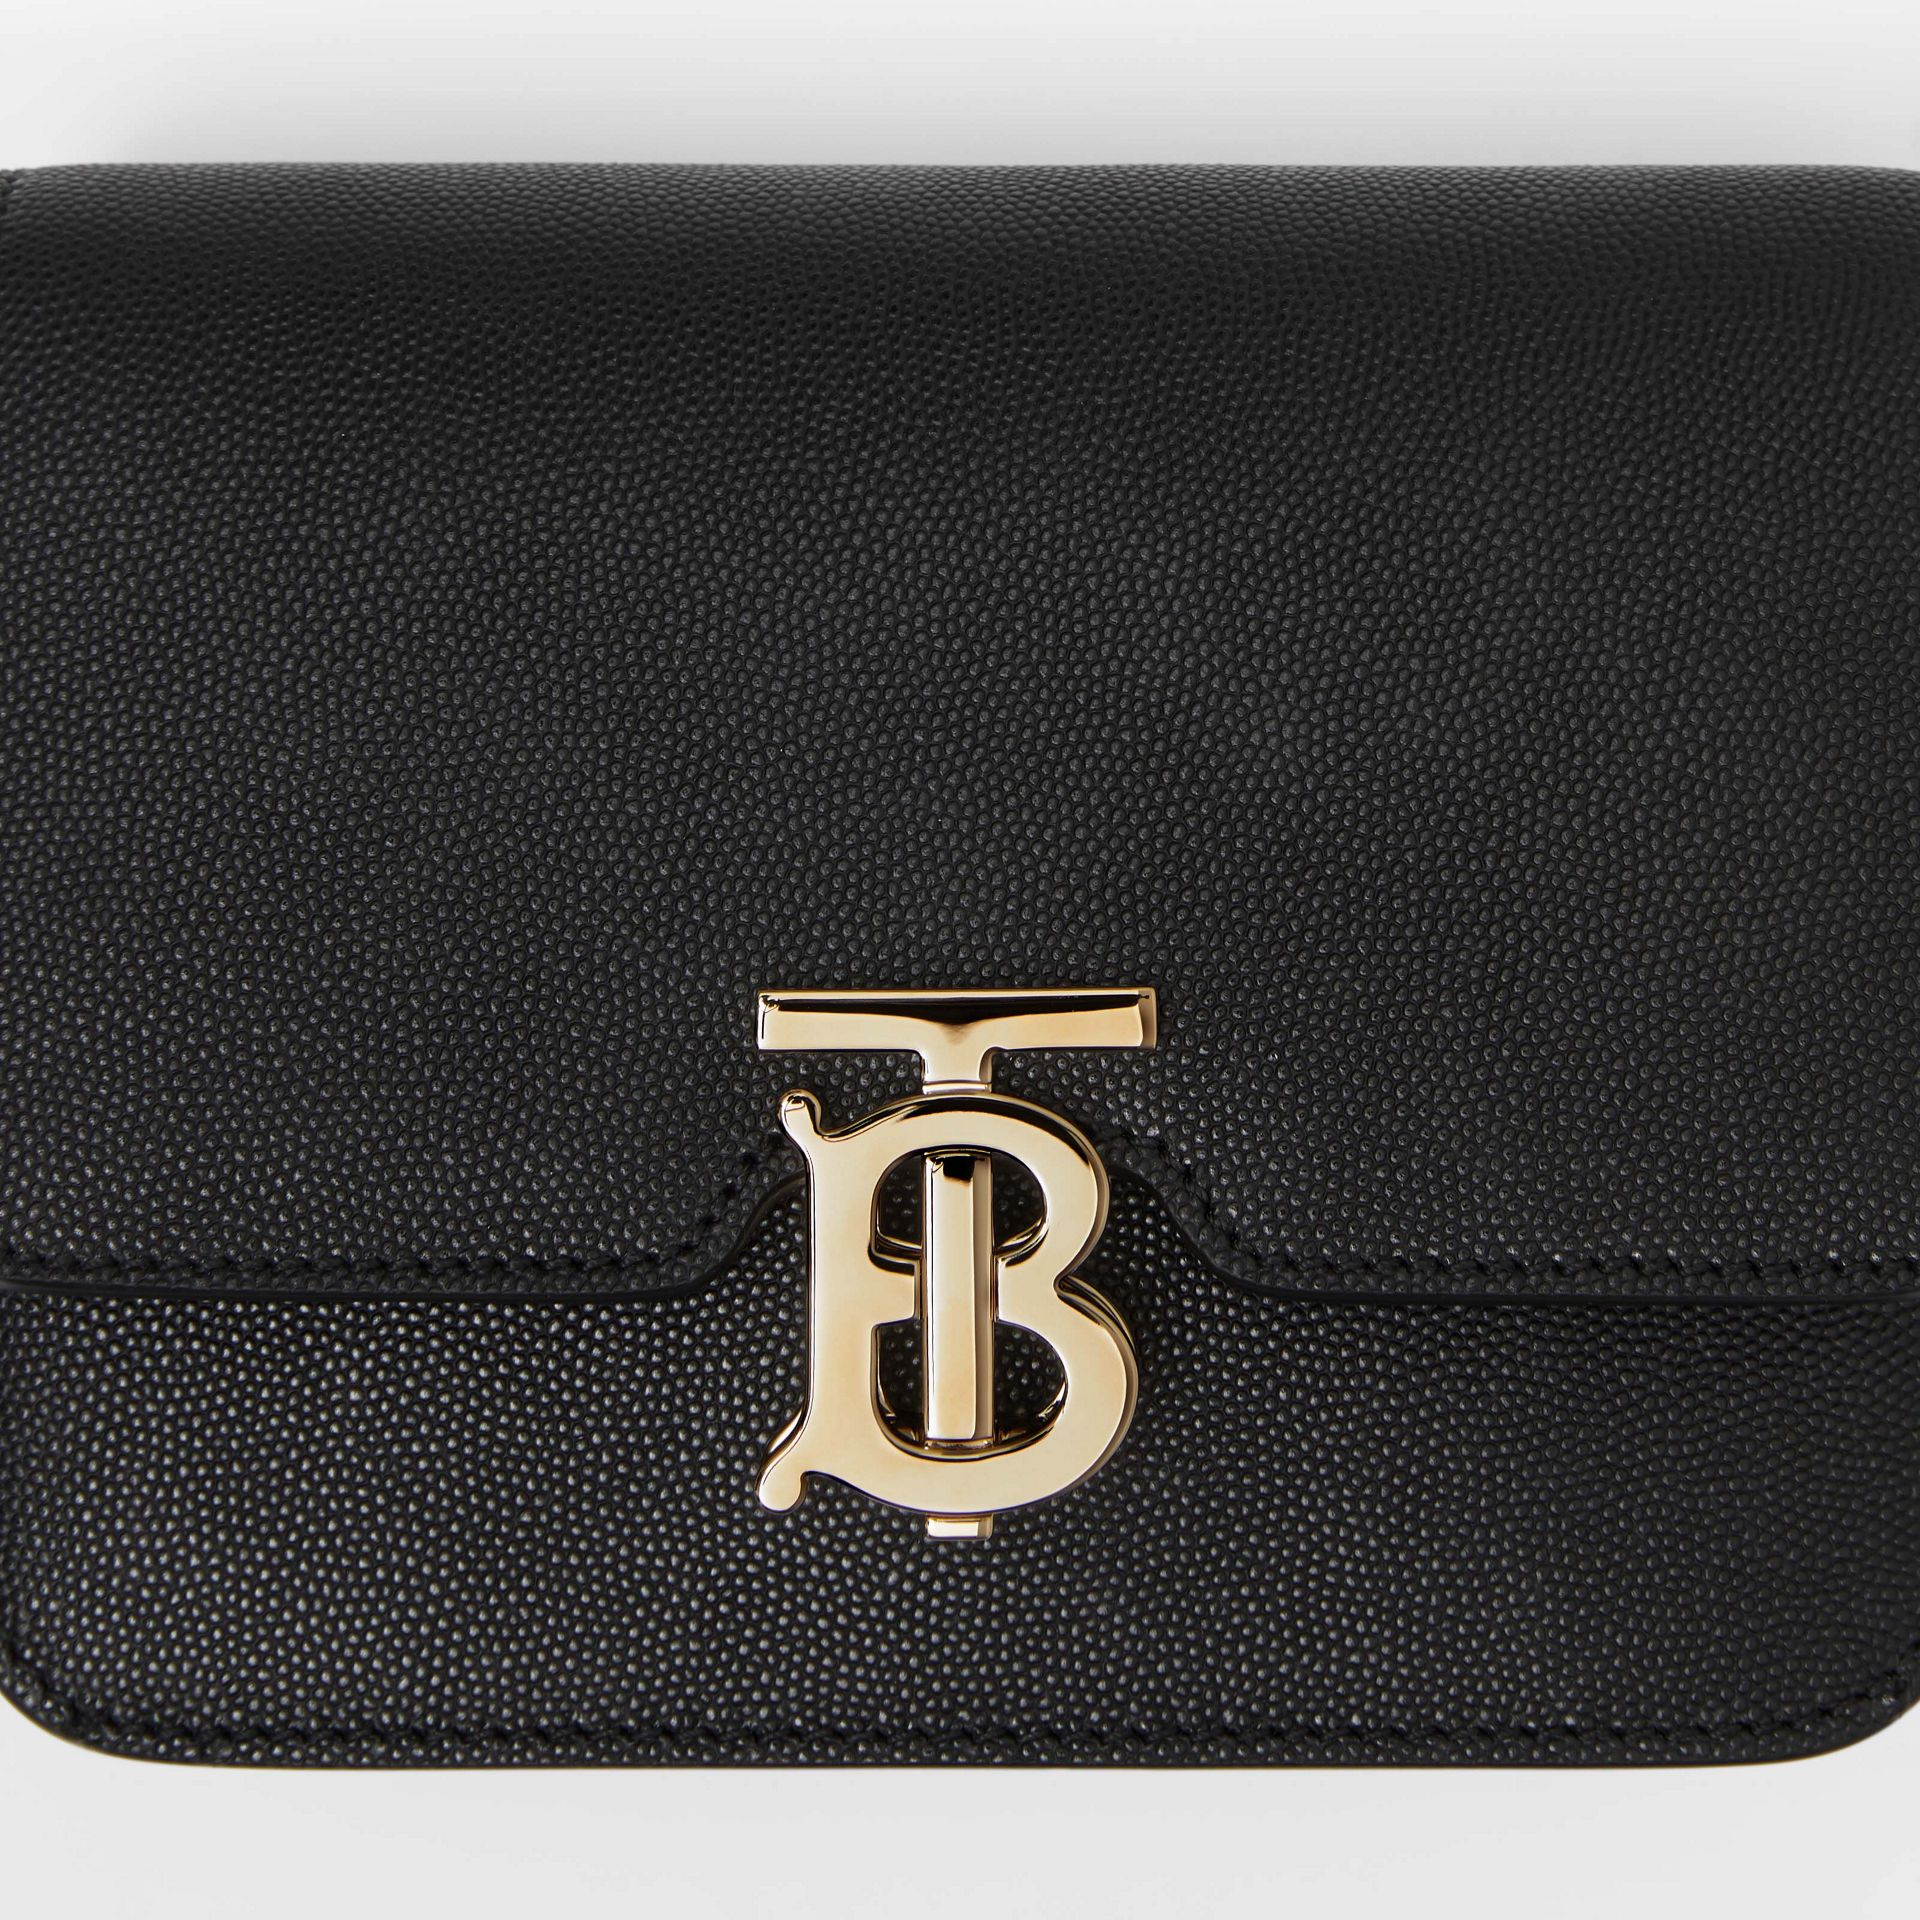 Mini Grainy Leather TB Bag in Black - Women | Burberry Canada - gallery image 1